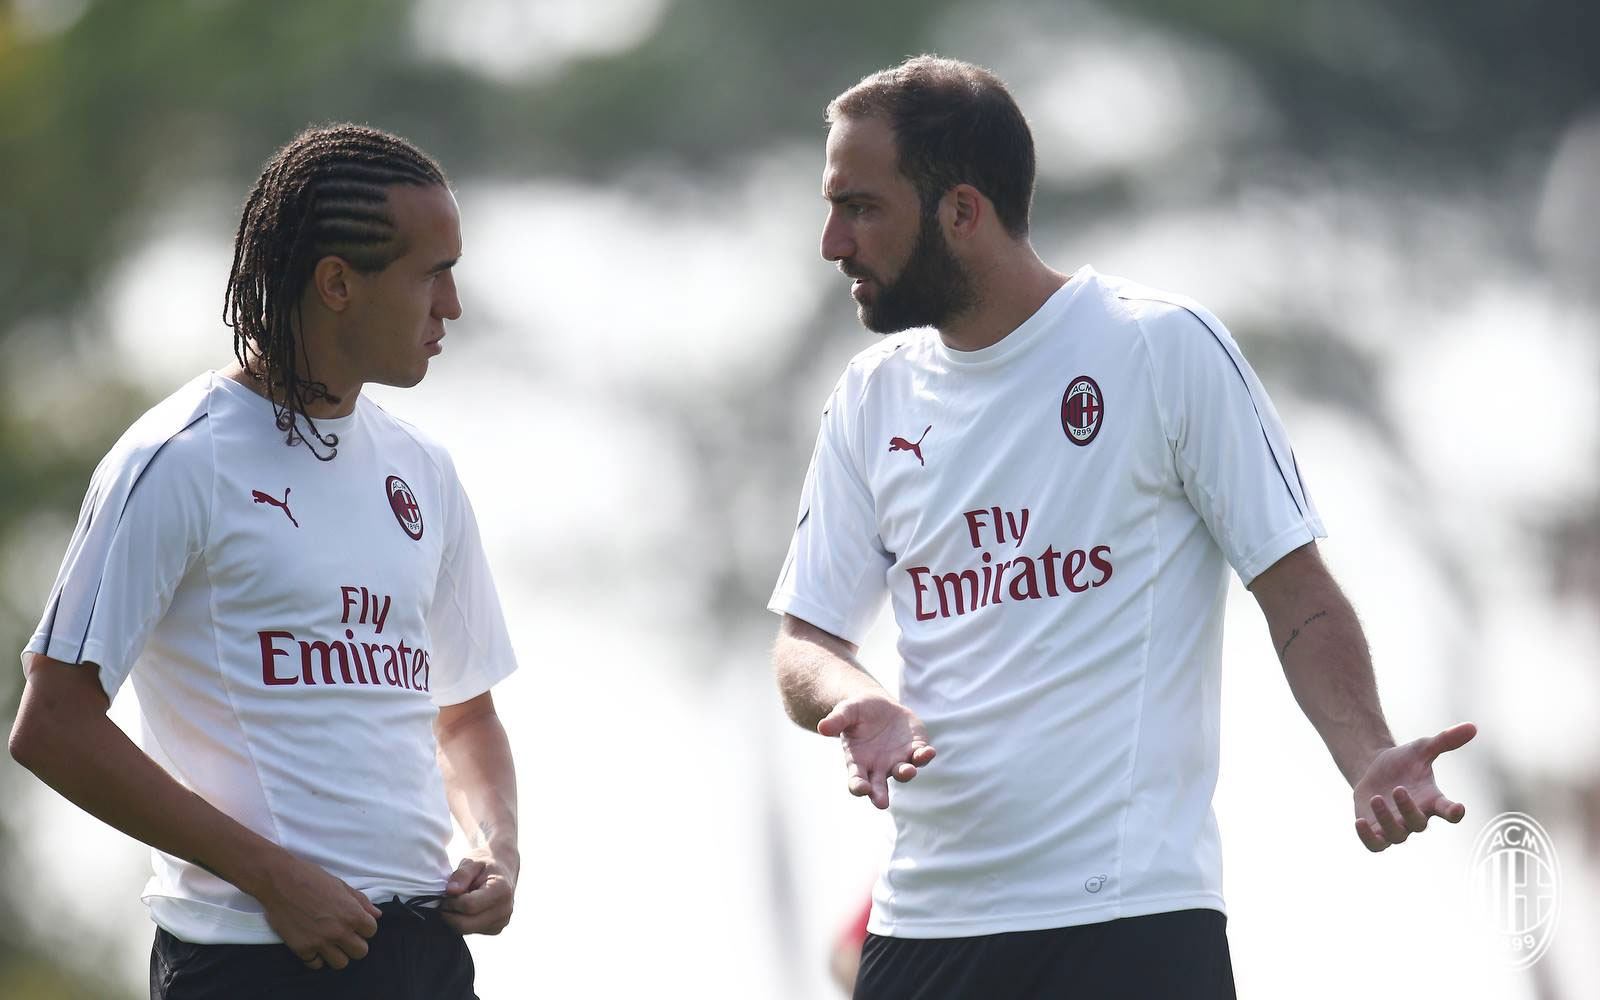 Gonzalo Higuain and Diego Laxalt during training at Milanello. (@acmilan.com)